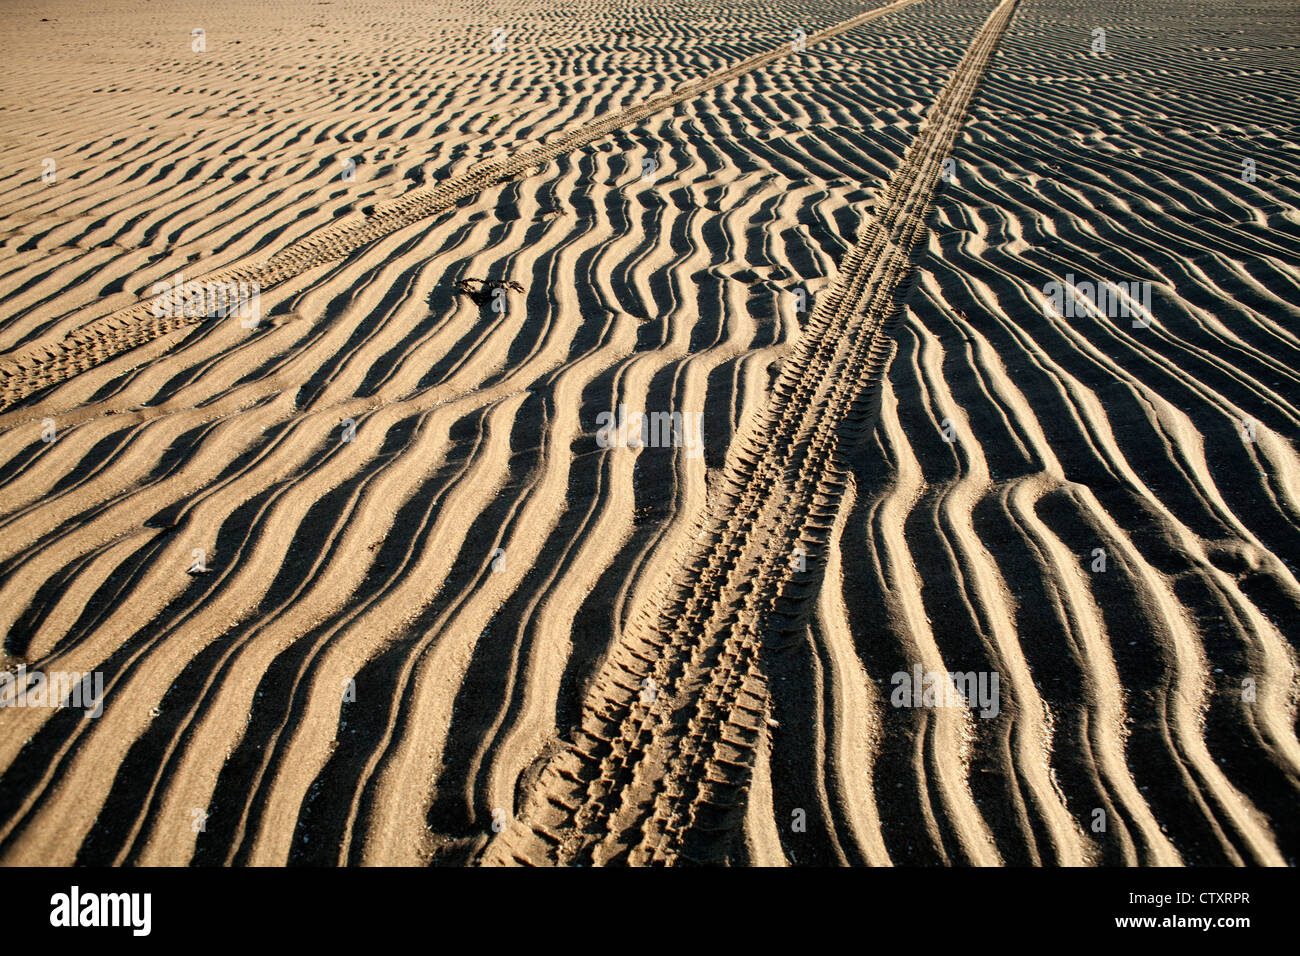 Abstract photograph of pattern texture tyre tracks and the ripple of sands left at low tide on beach at low tide - Stock Image